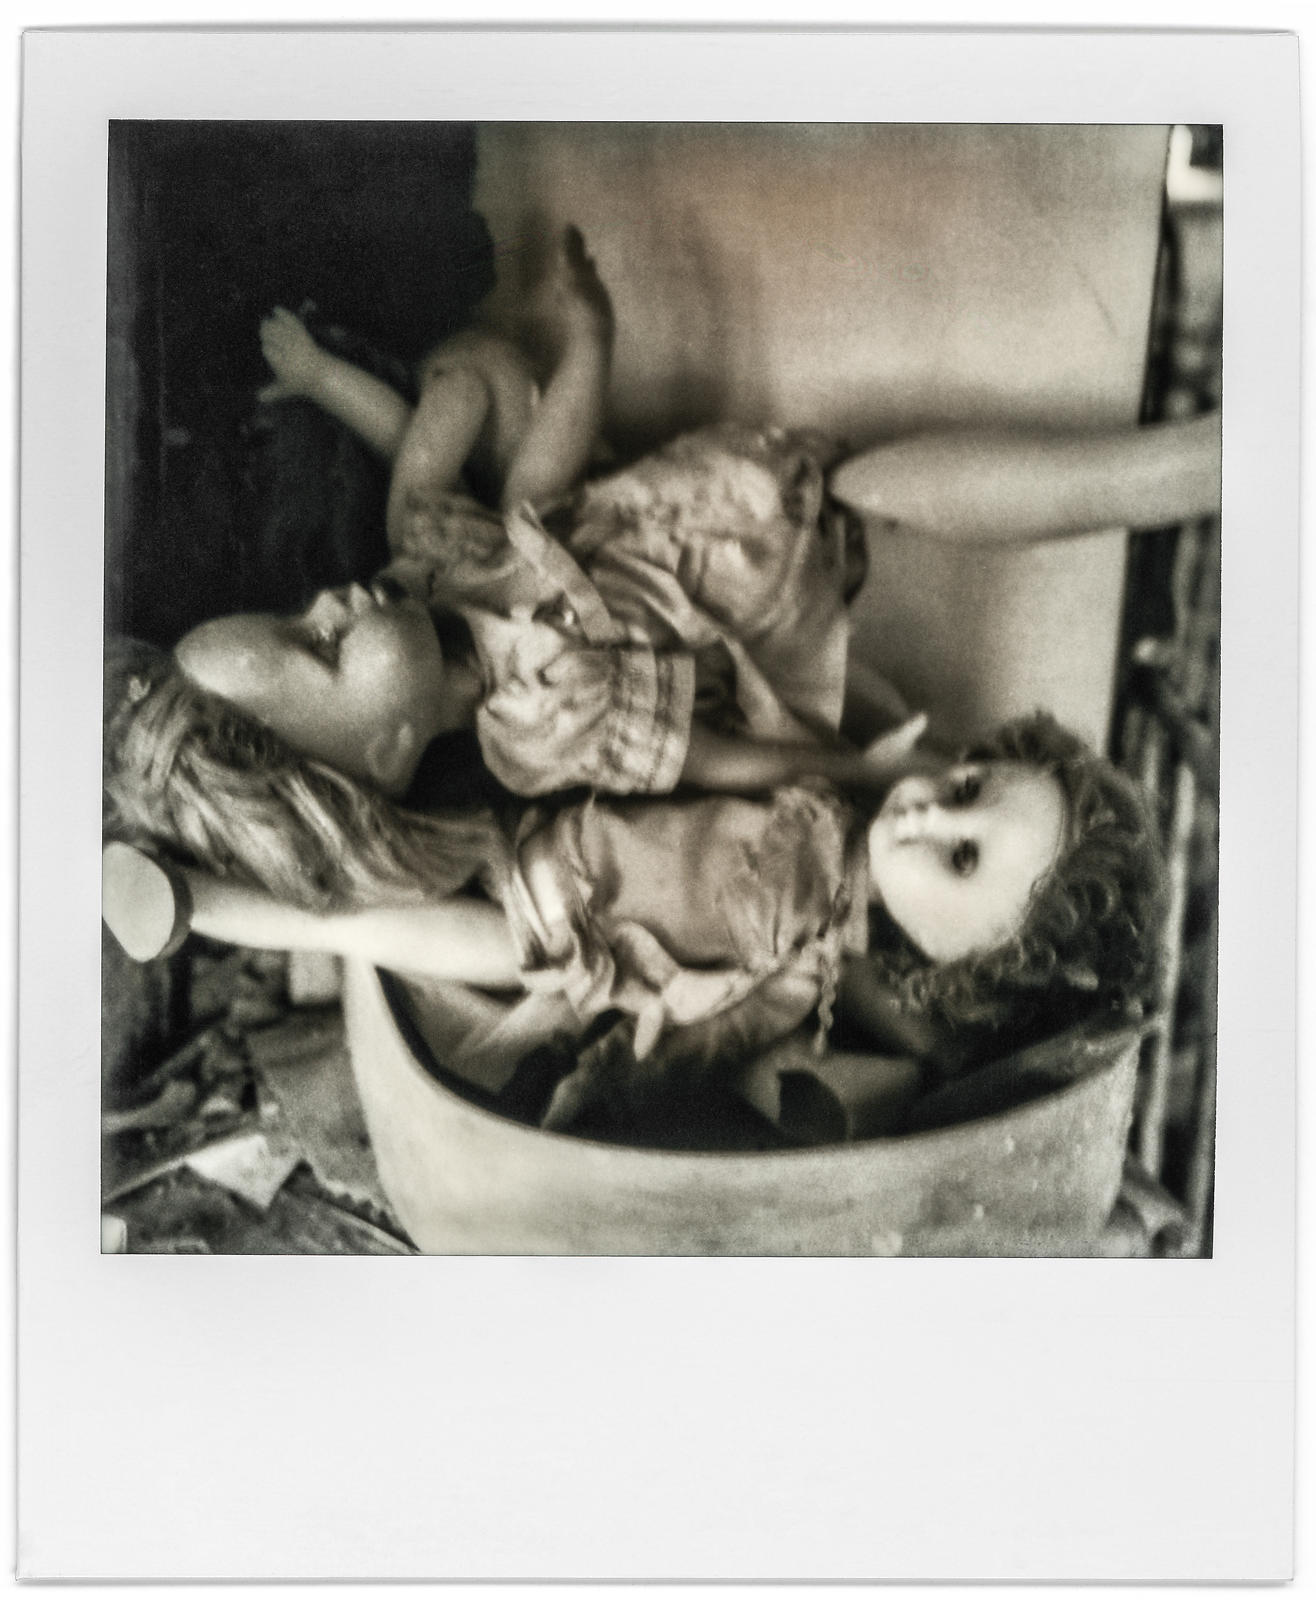 photo-polaroid-tchernobyl-chernobyl-7-2